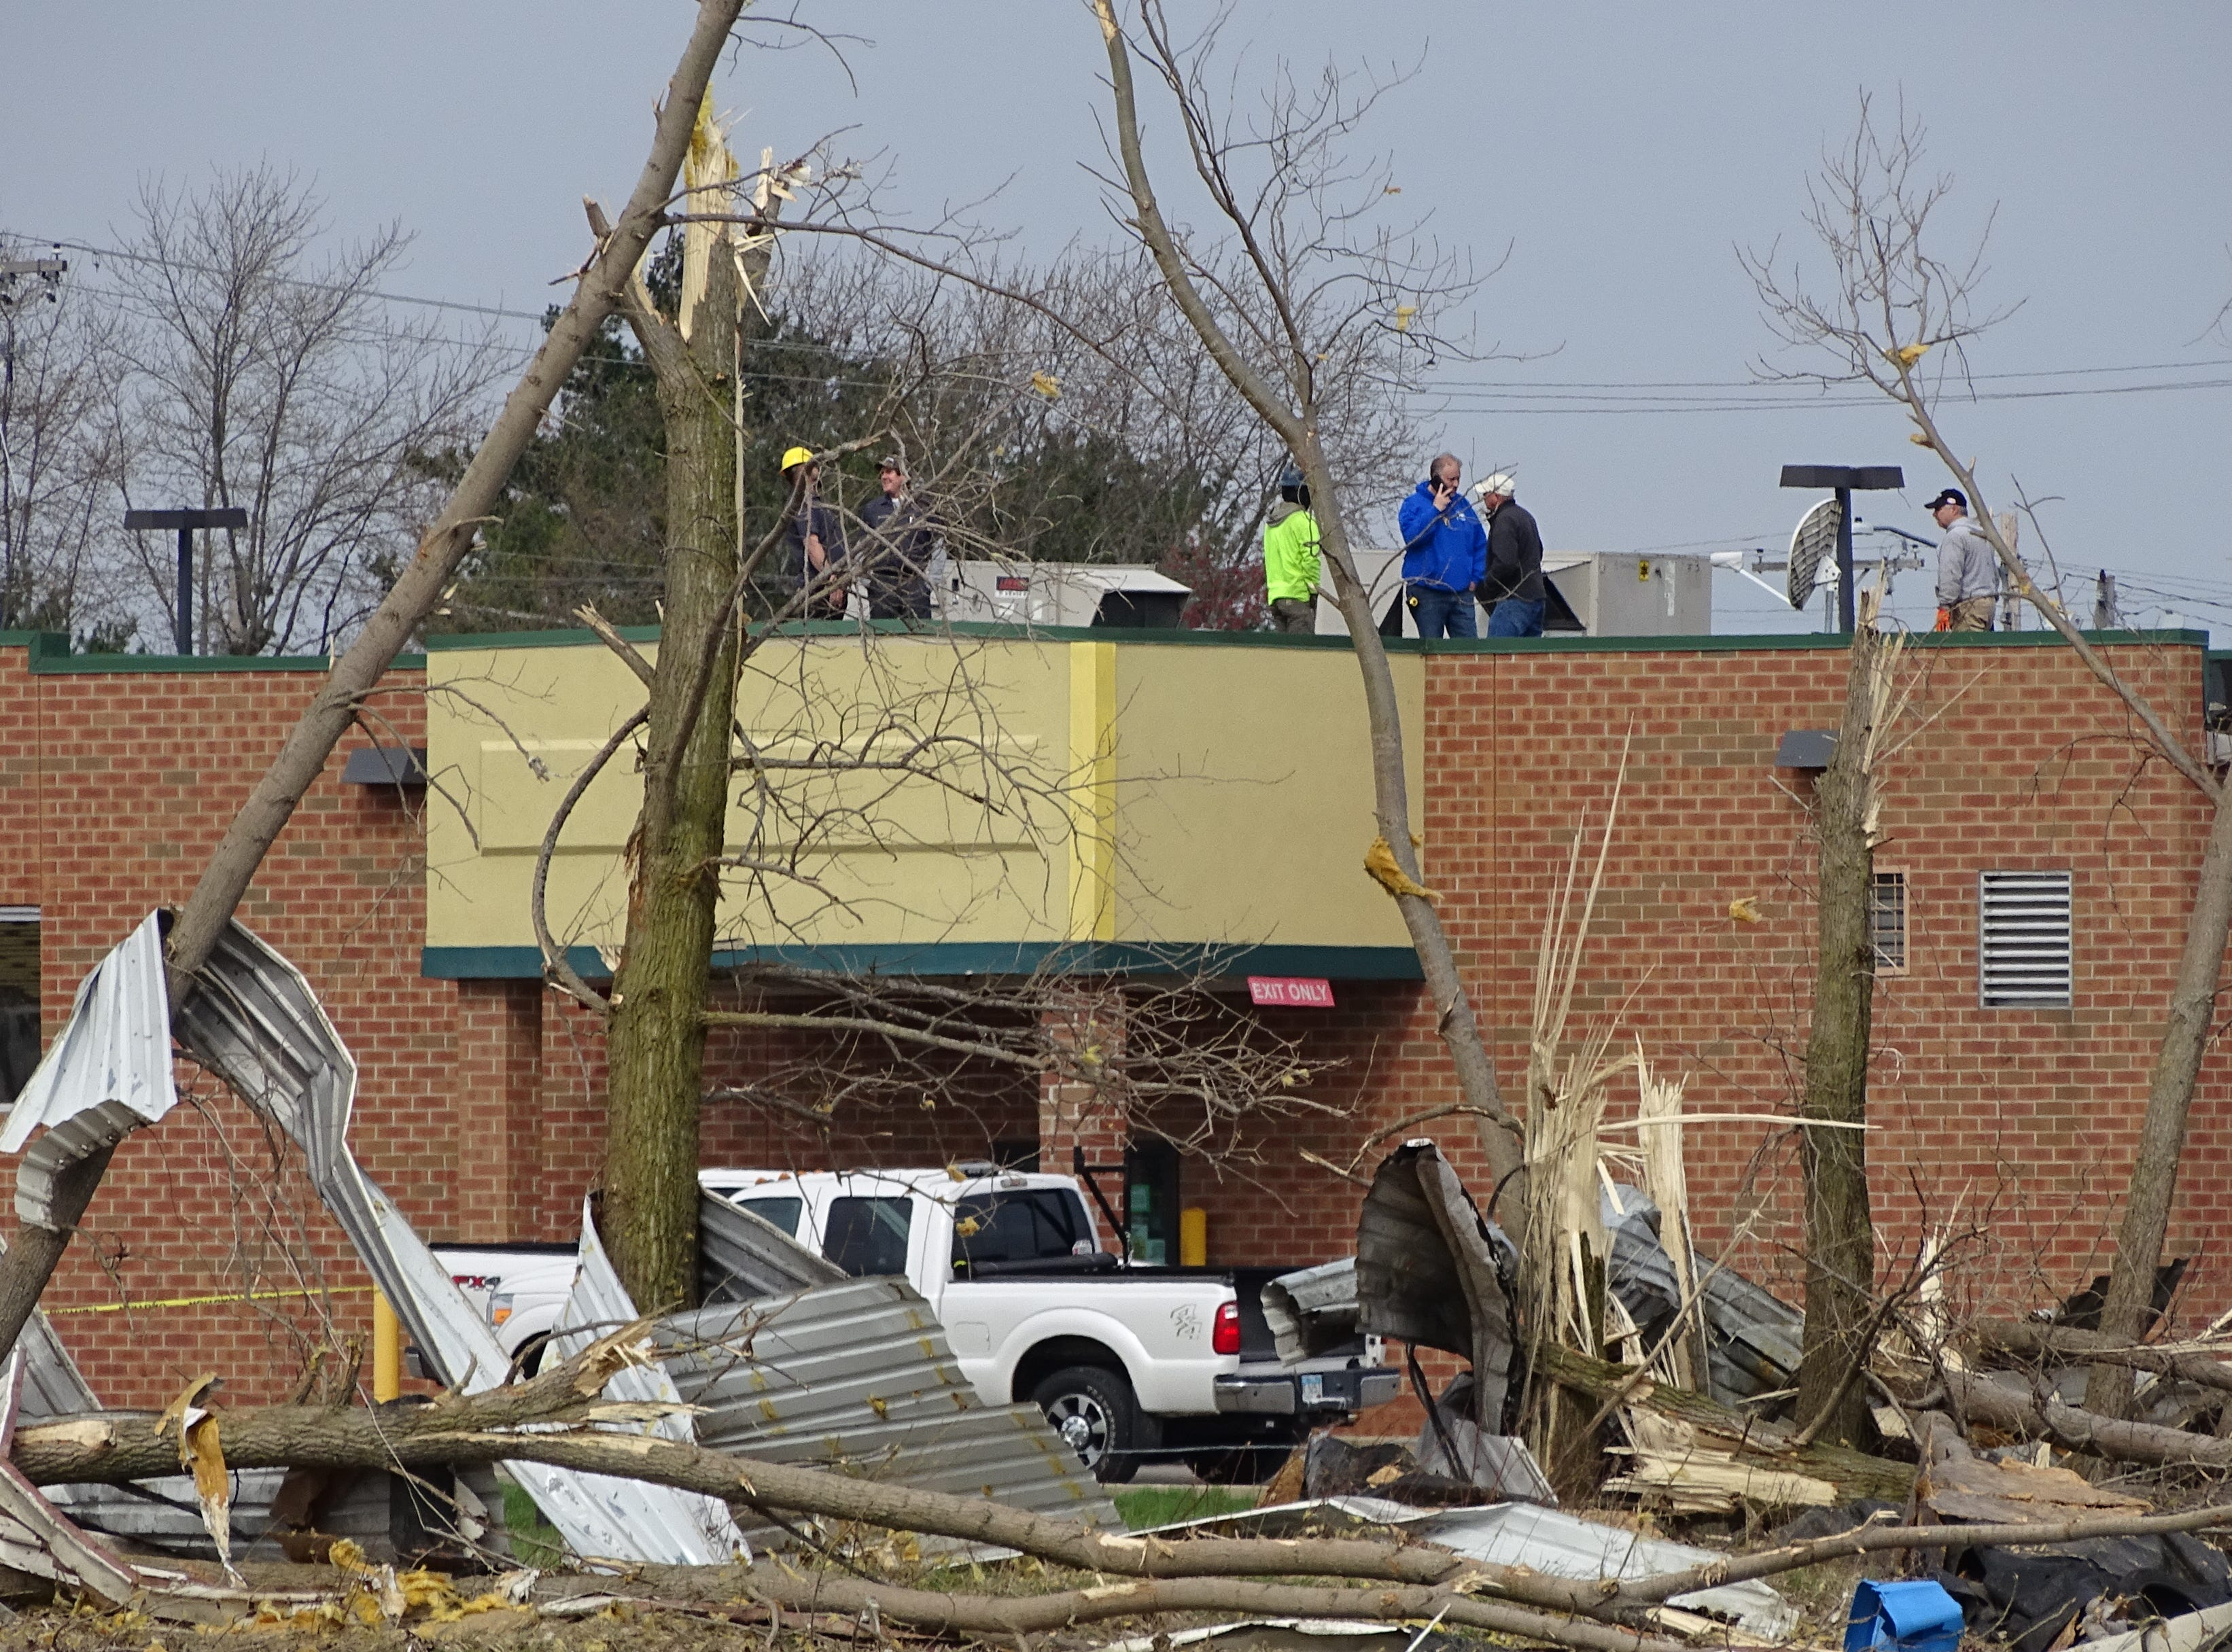 Workers stand on the roof of Discount Drug Mart on Ohio 39 in Shelby, which remained closed Tuesday. The building was damaged when an EF-2 tornado hit the community on Sunday.